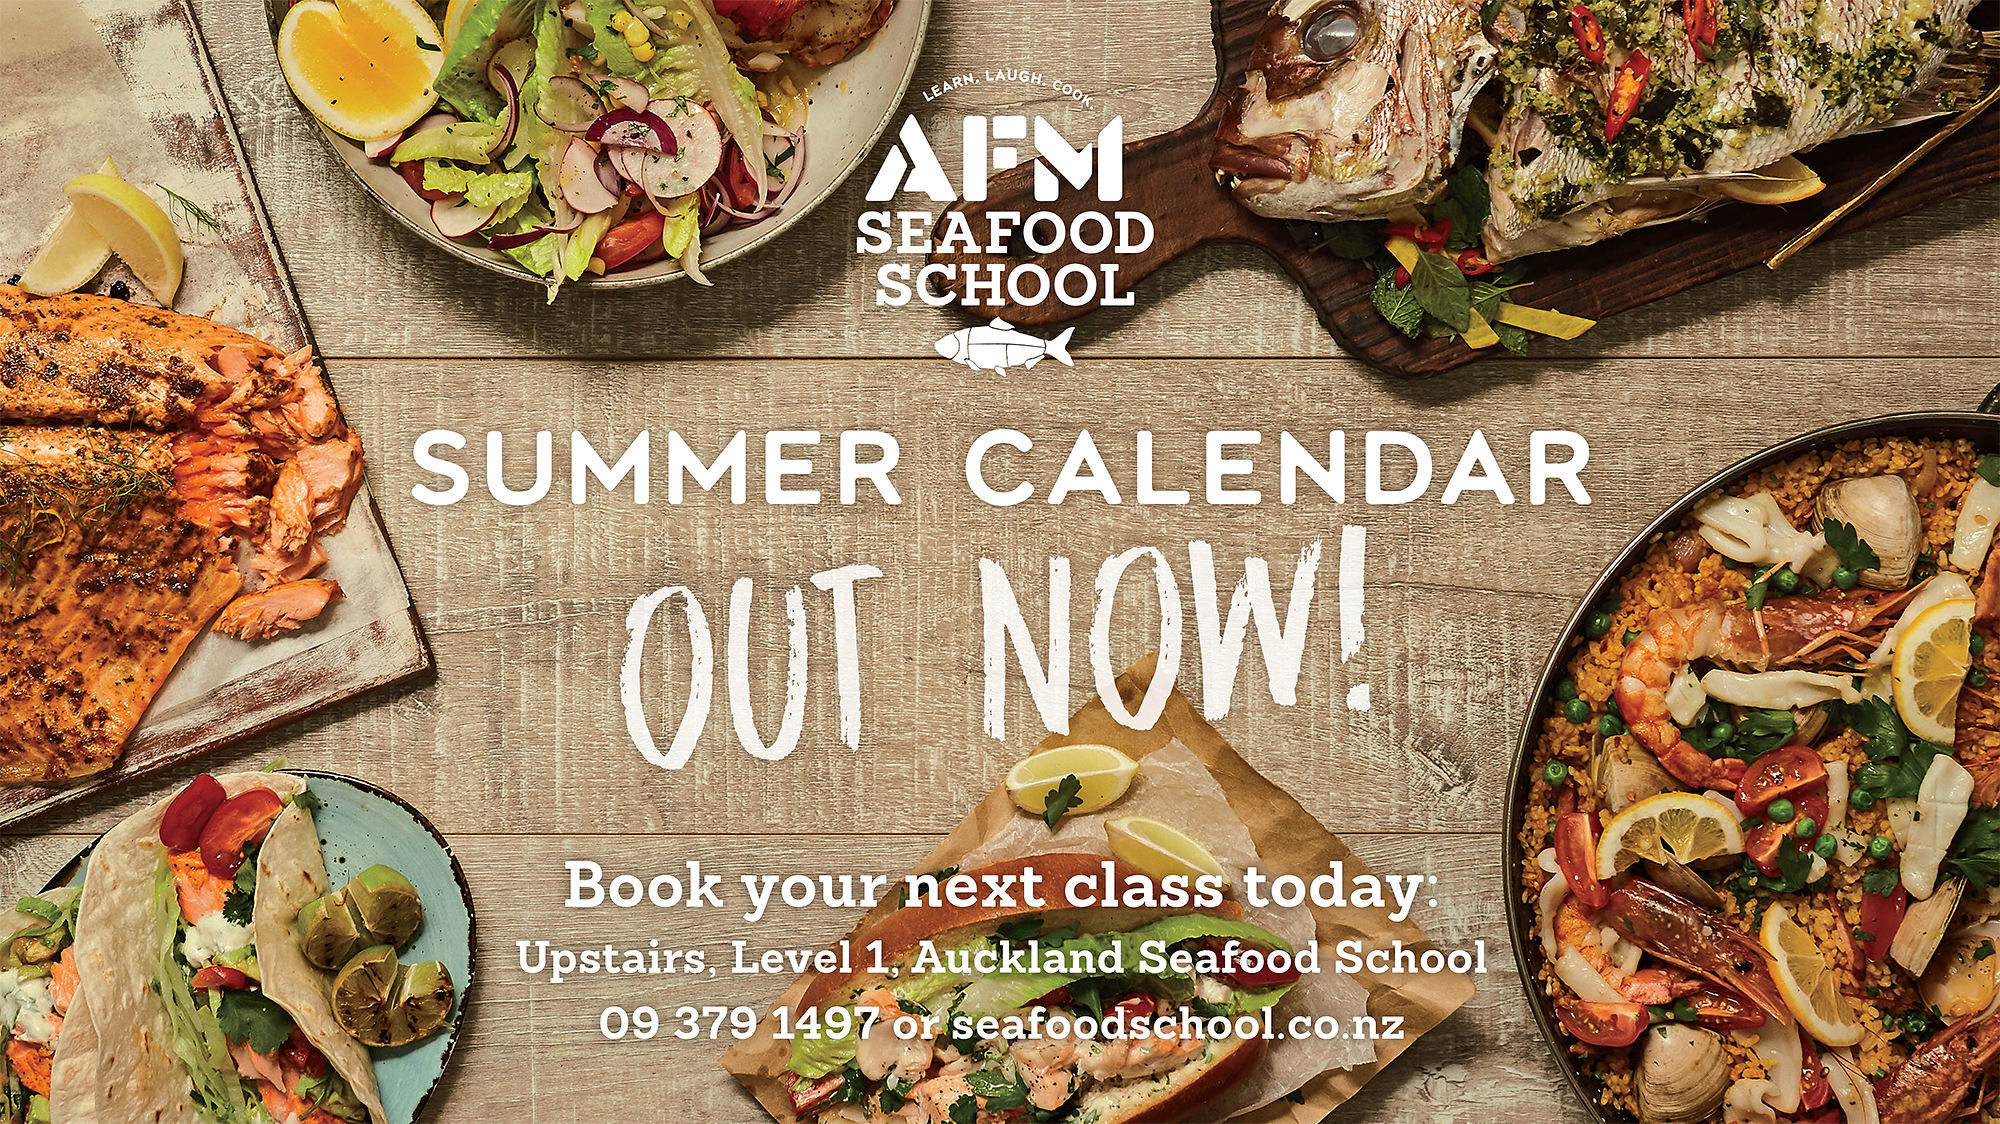 Auckland Seafood School Summer calendar cooking classes